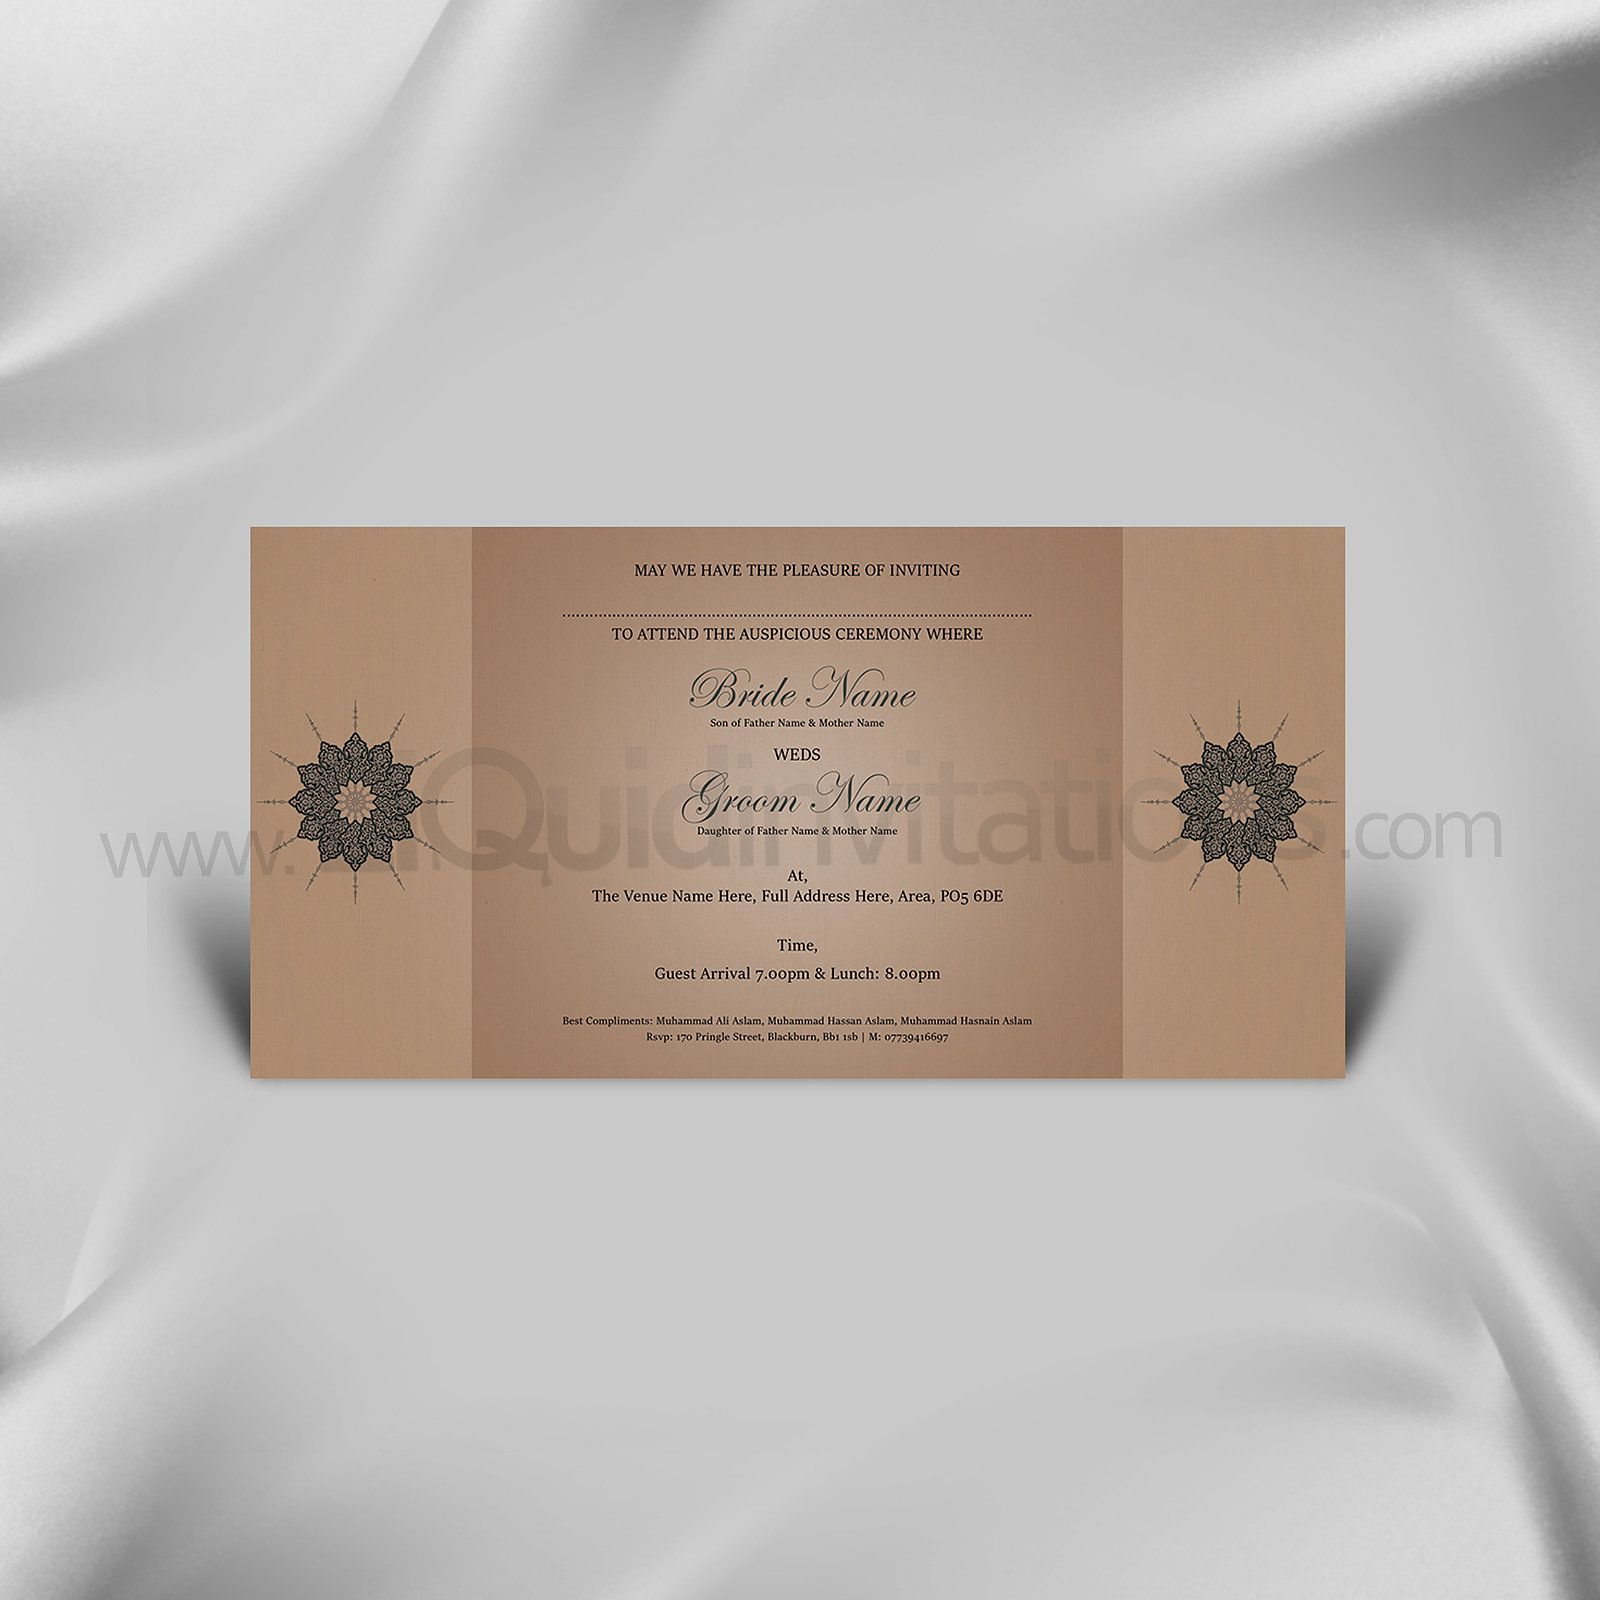 Shaadi Card Brown Green Invitation Wedding And Weddings